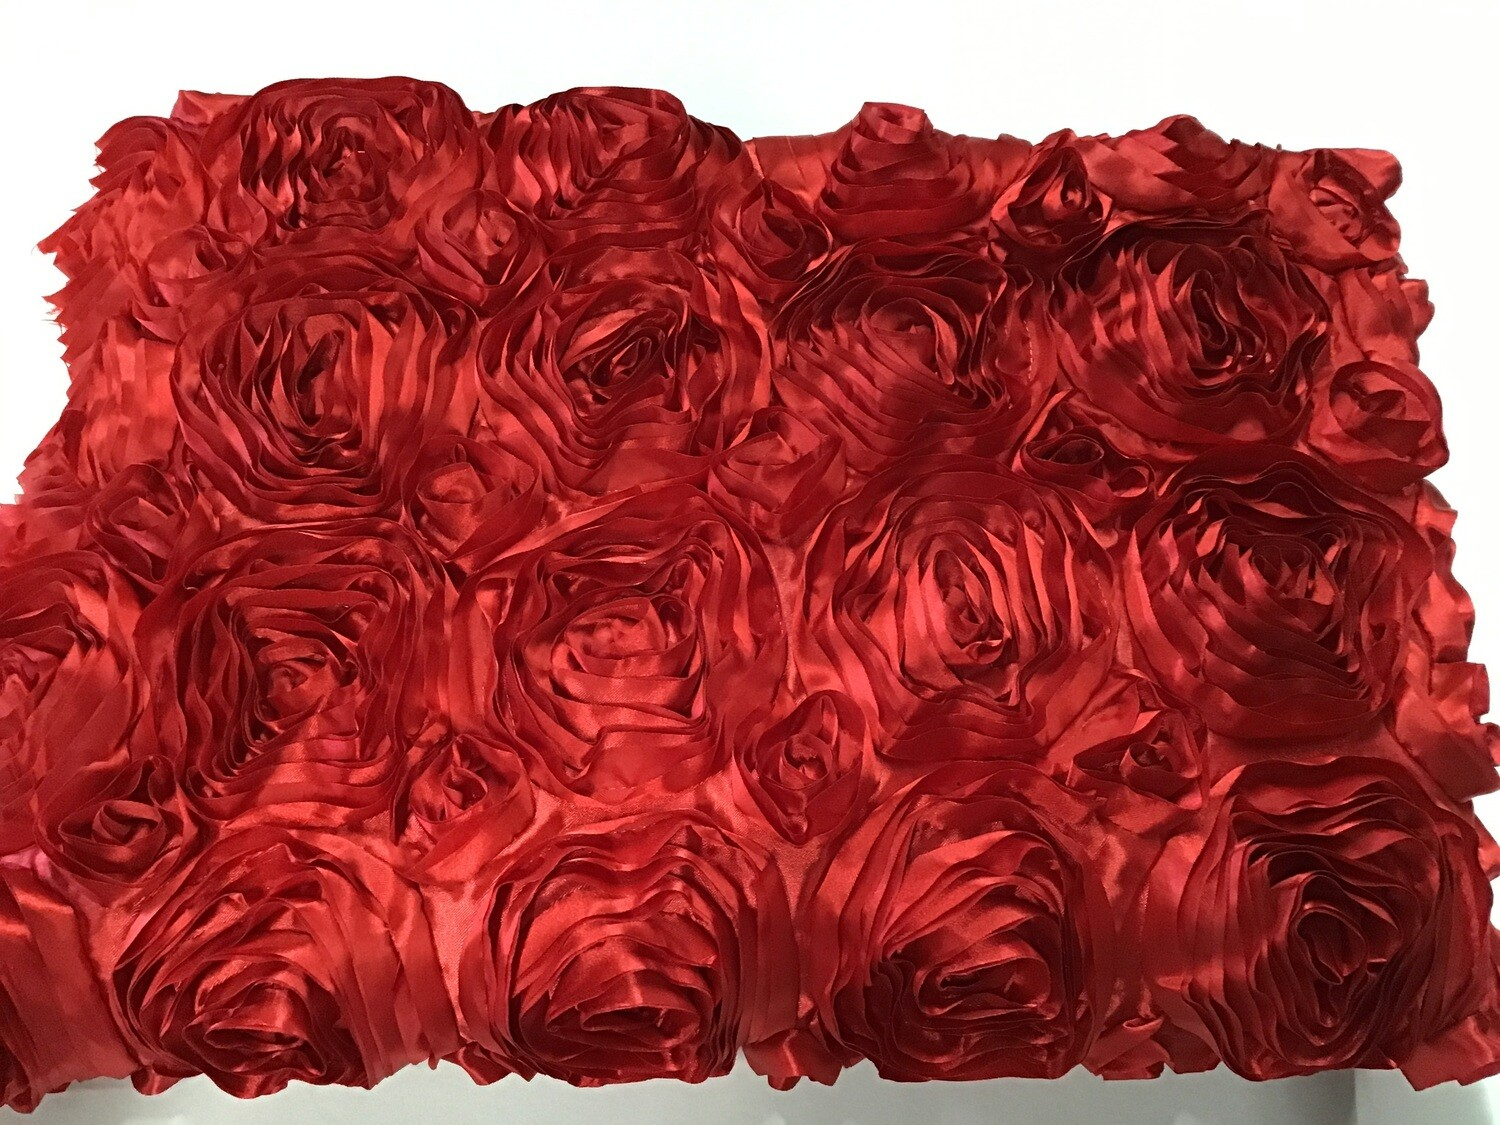 Fabric: Red Roses